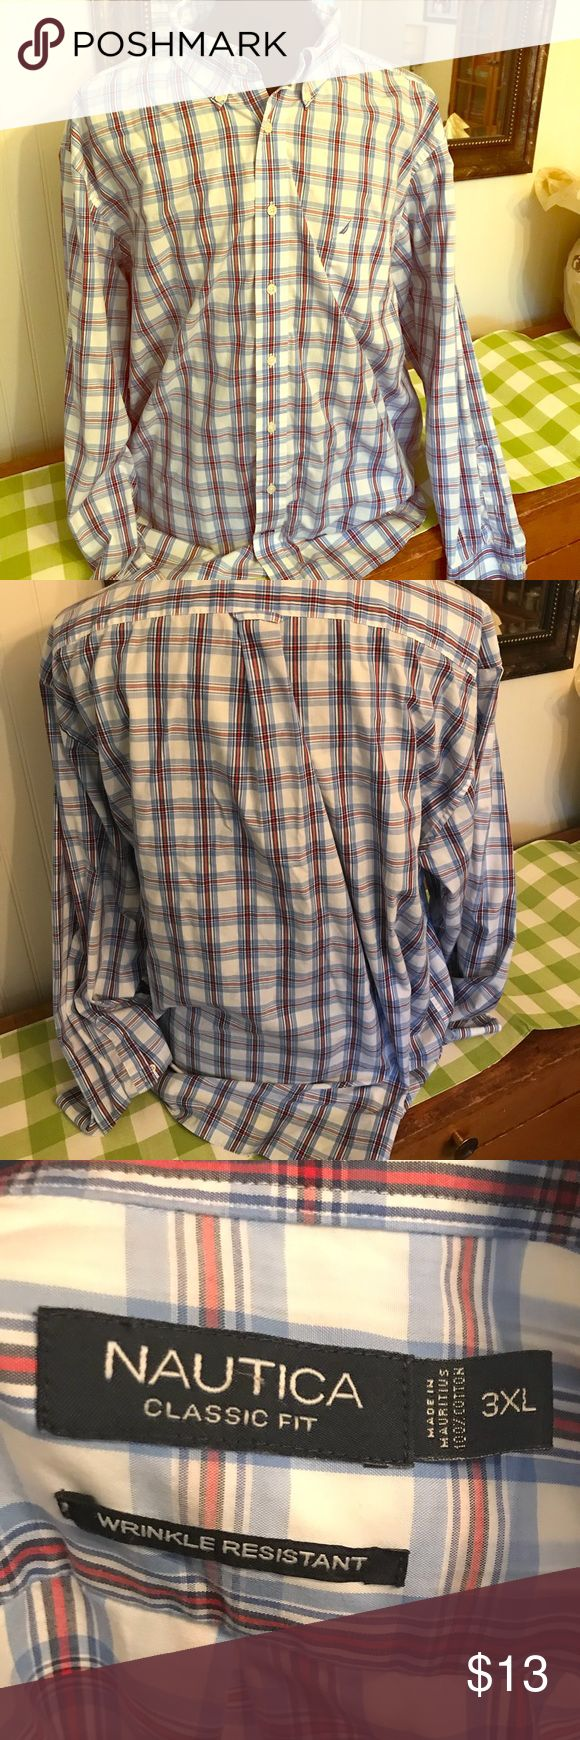 Nautica LS Button Up Dress Shirt Men 3XL big tall Shirt is in excellent pre owned, gently used condition! Long sleeve button up and wrinkle resistant!   From a smoke & pet free home!  I have lots of Big & Tall clothes listed so please check out my closet! Nautica Shirts Dress Shirts